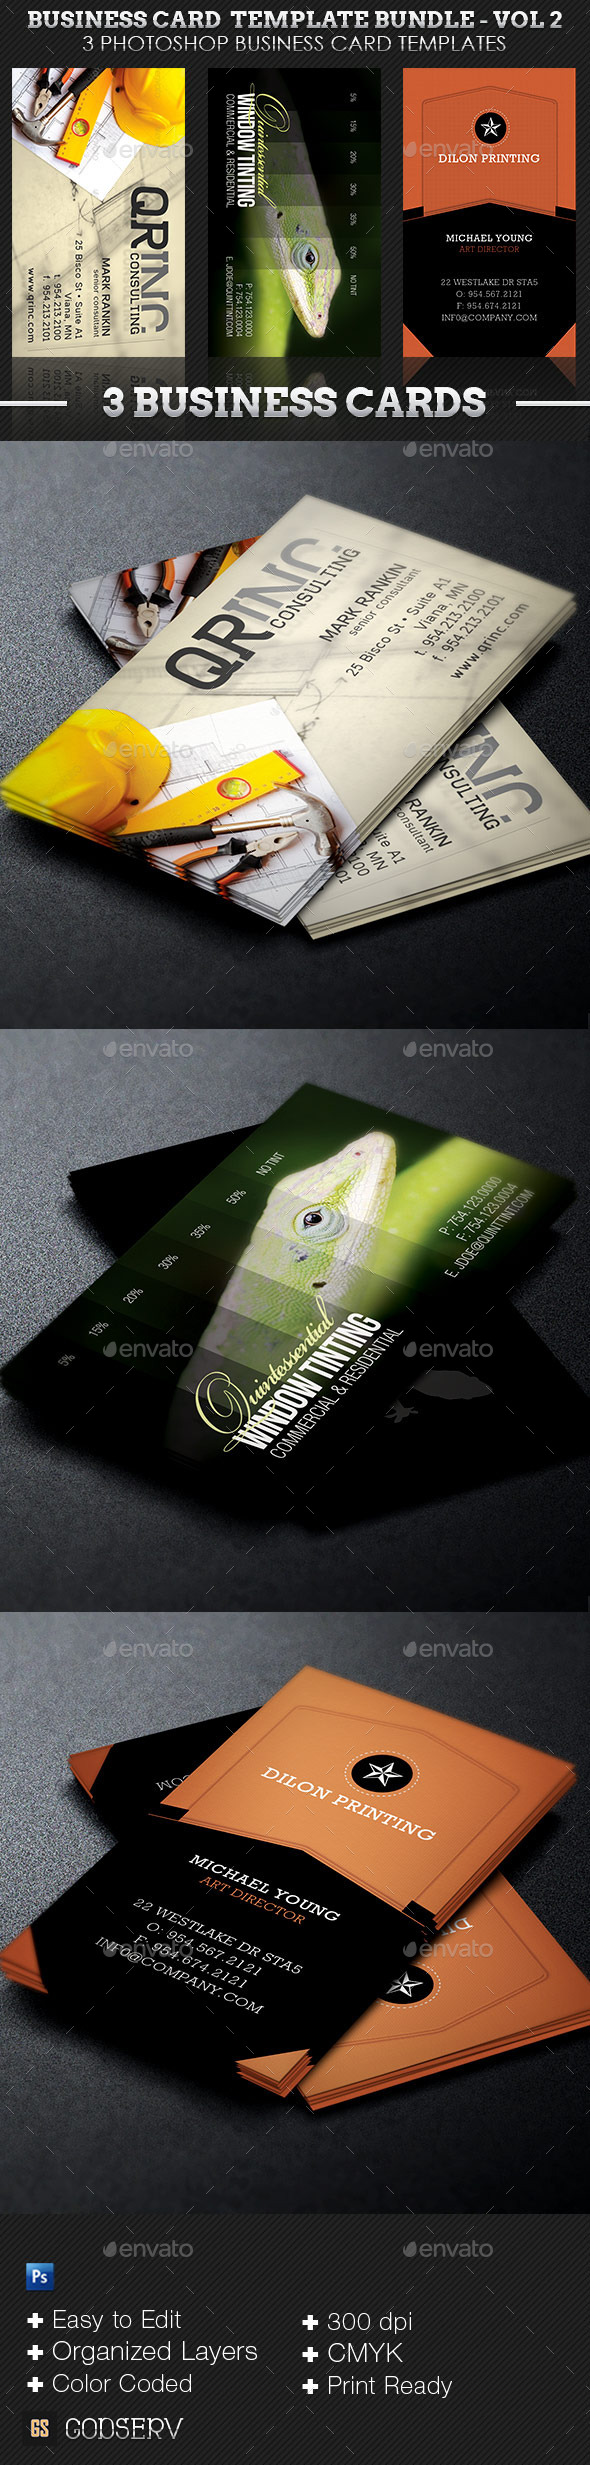 Business Card Template Bundle - Volume 2 - Industry Specific Business Cards